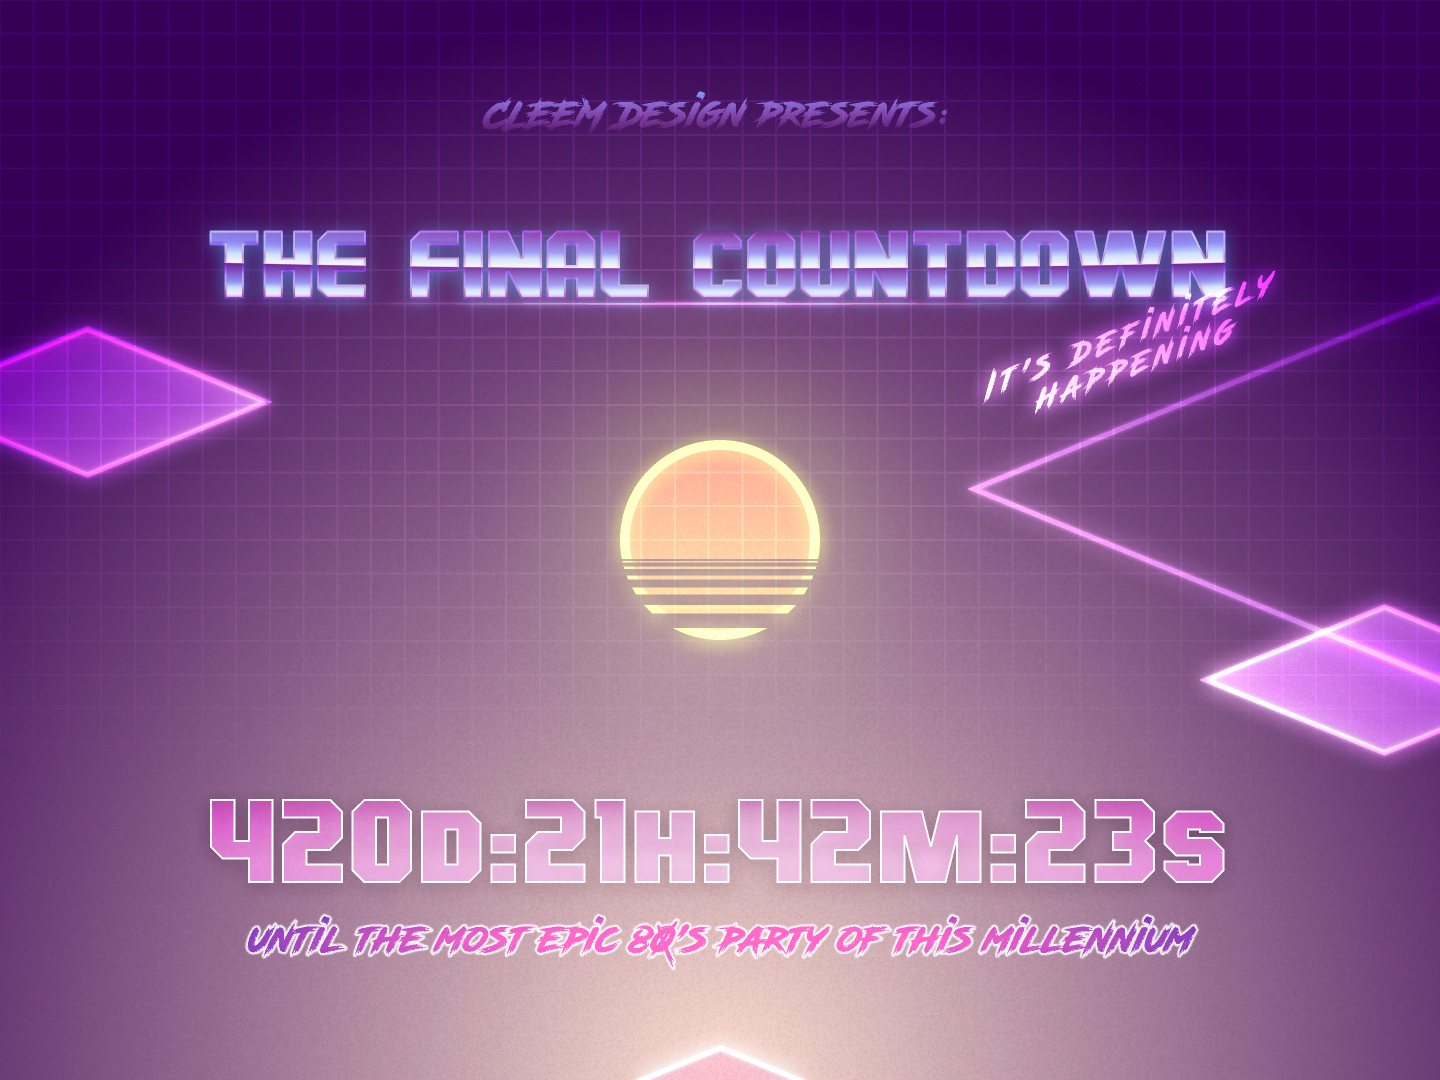 Daily UI #014: Countdown Timer epic countdowntimer countdown countdown timer 80s style 80s party 014 daily ui 014 ux vector ui design dailyui figma daily challange application